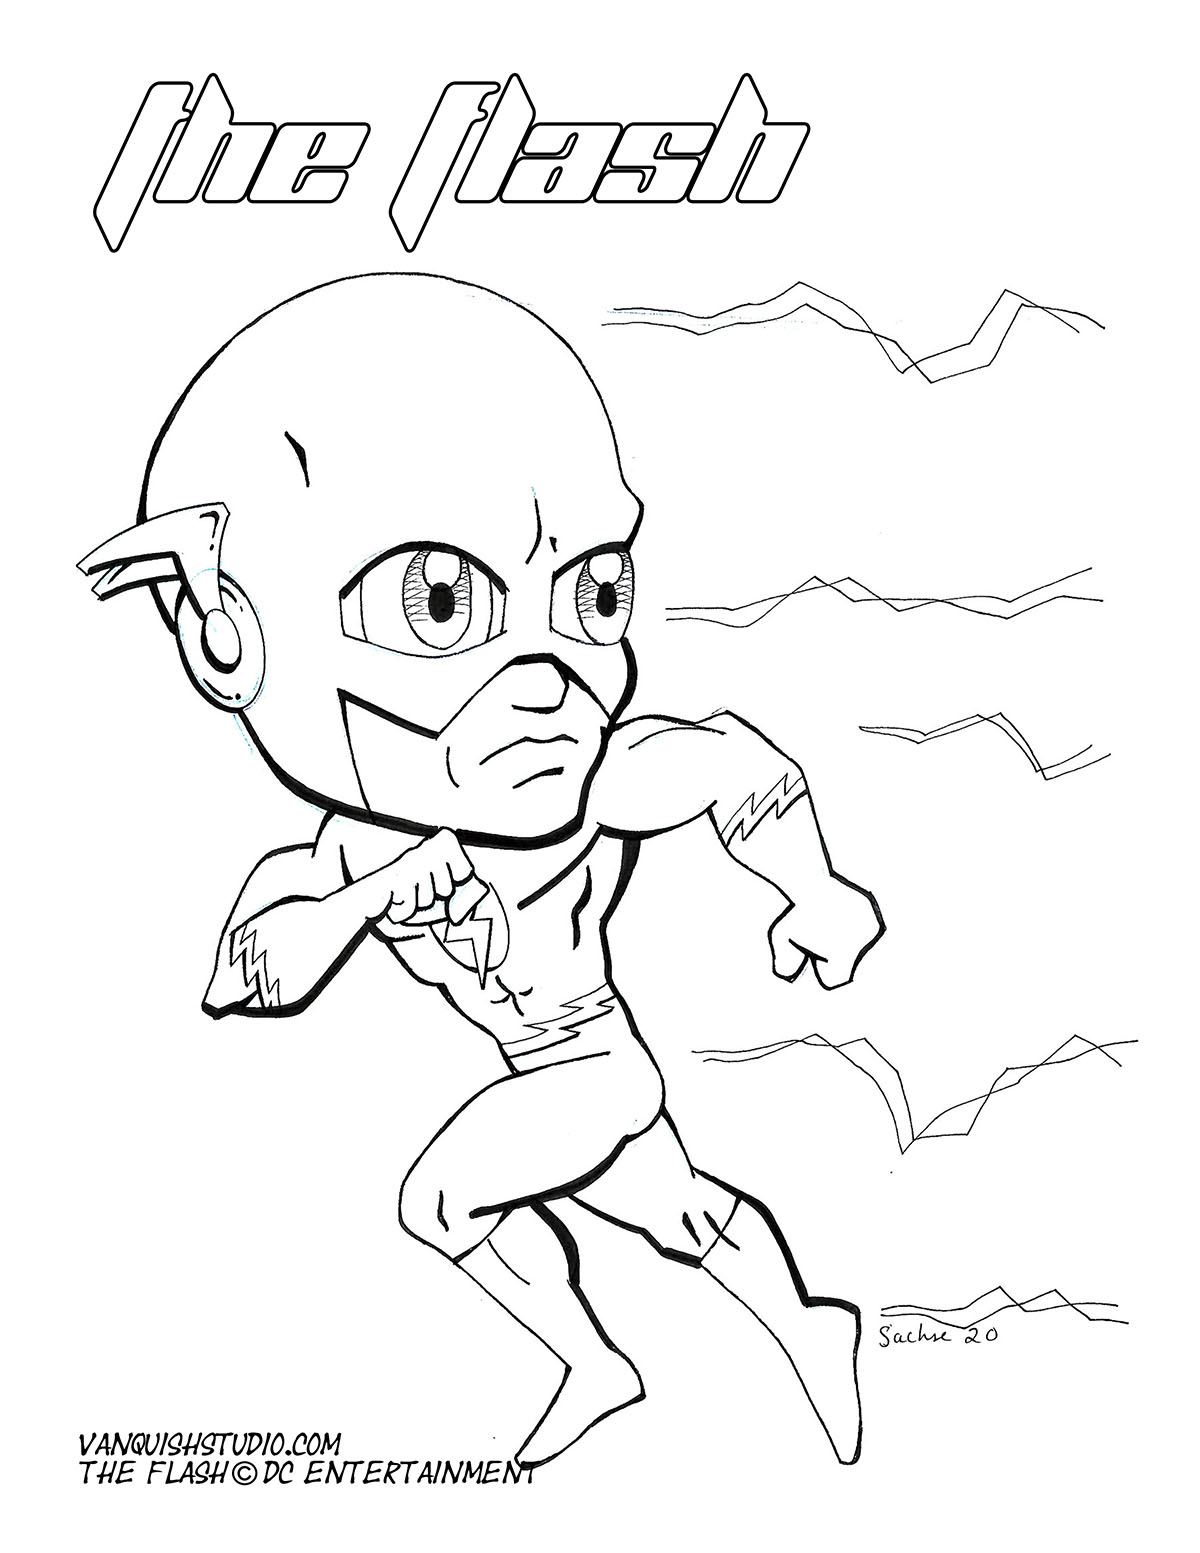 Flash2 Coloring page